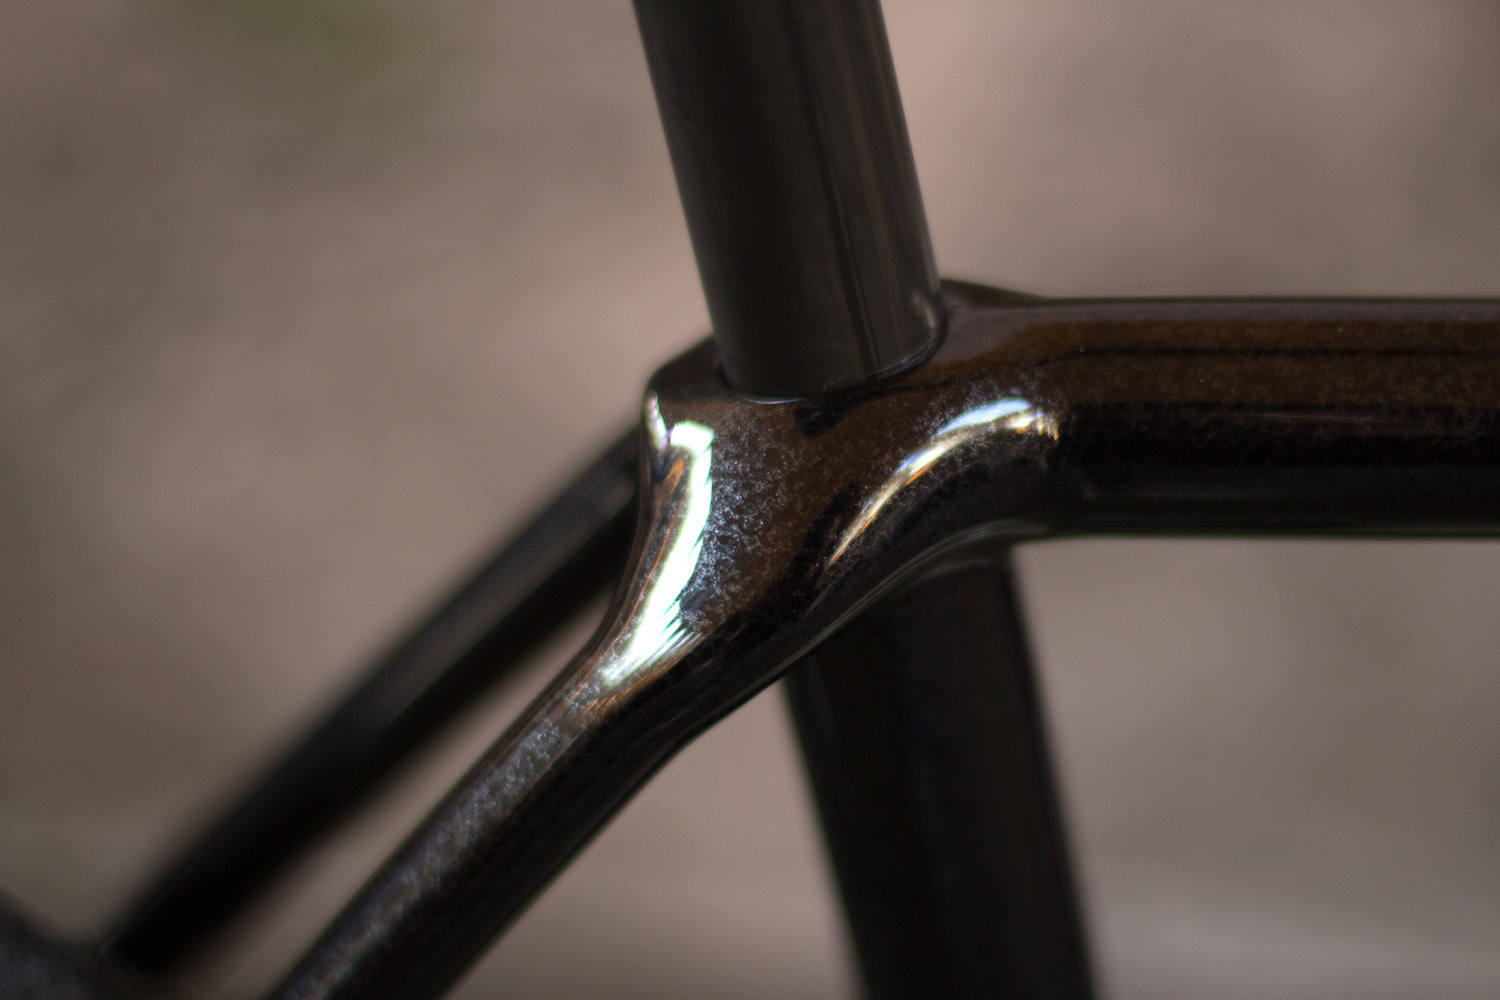 quirk_cycles_sram_bespoked_build_07.jpg